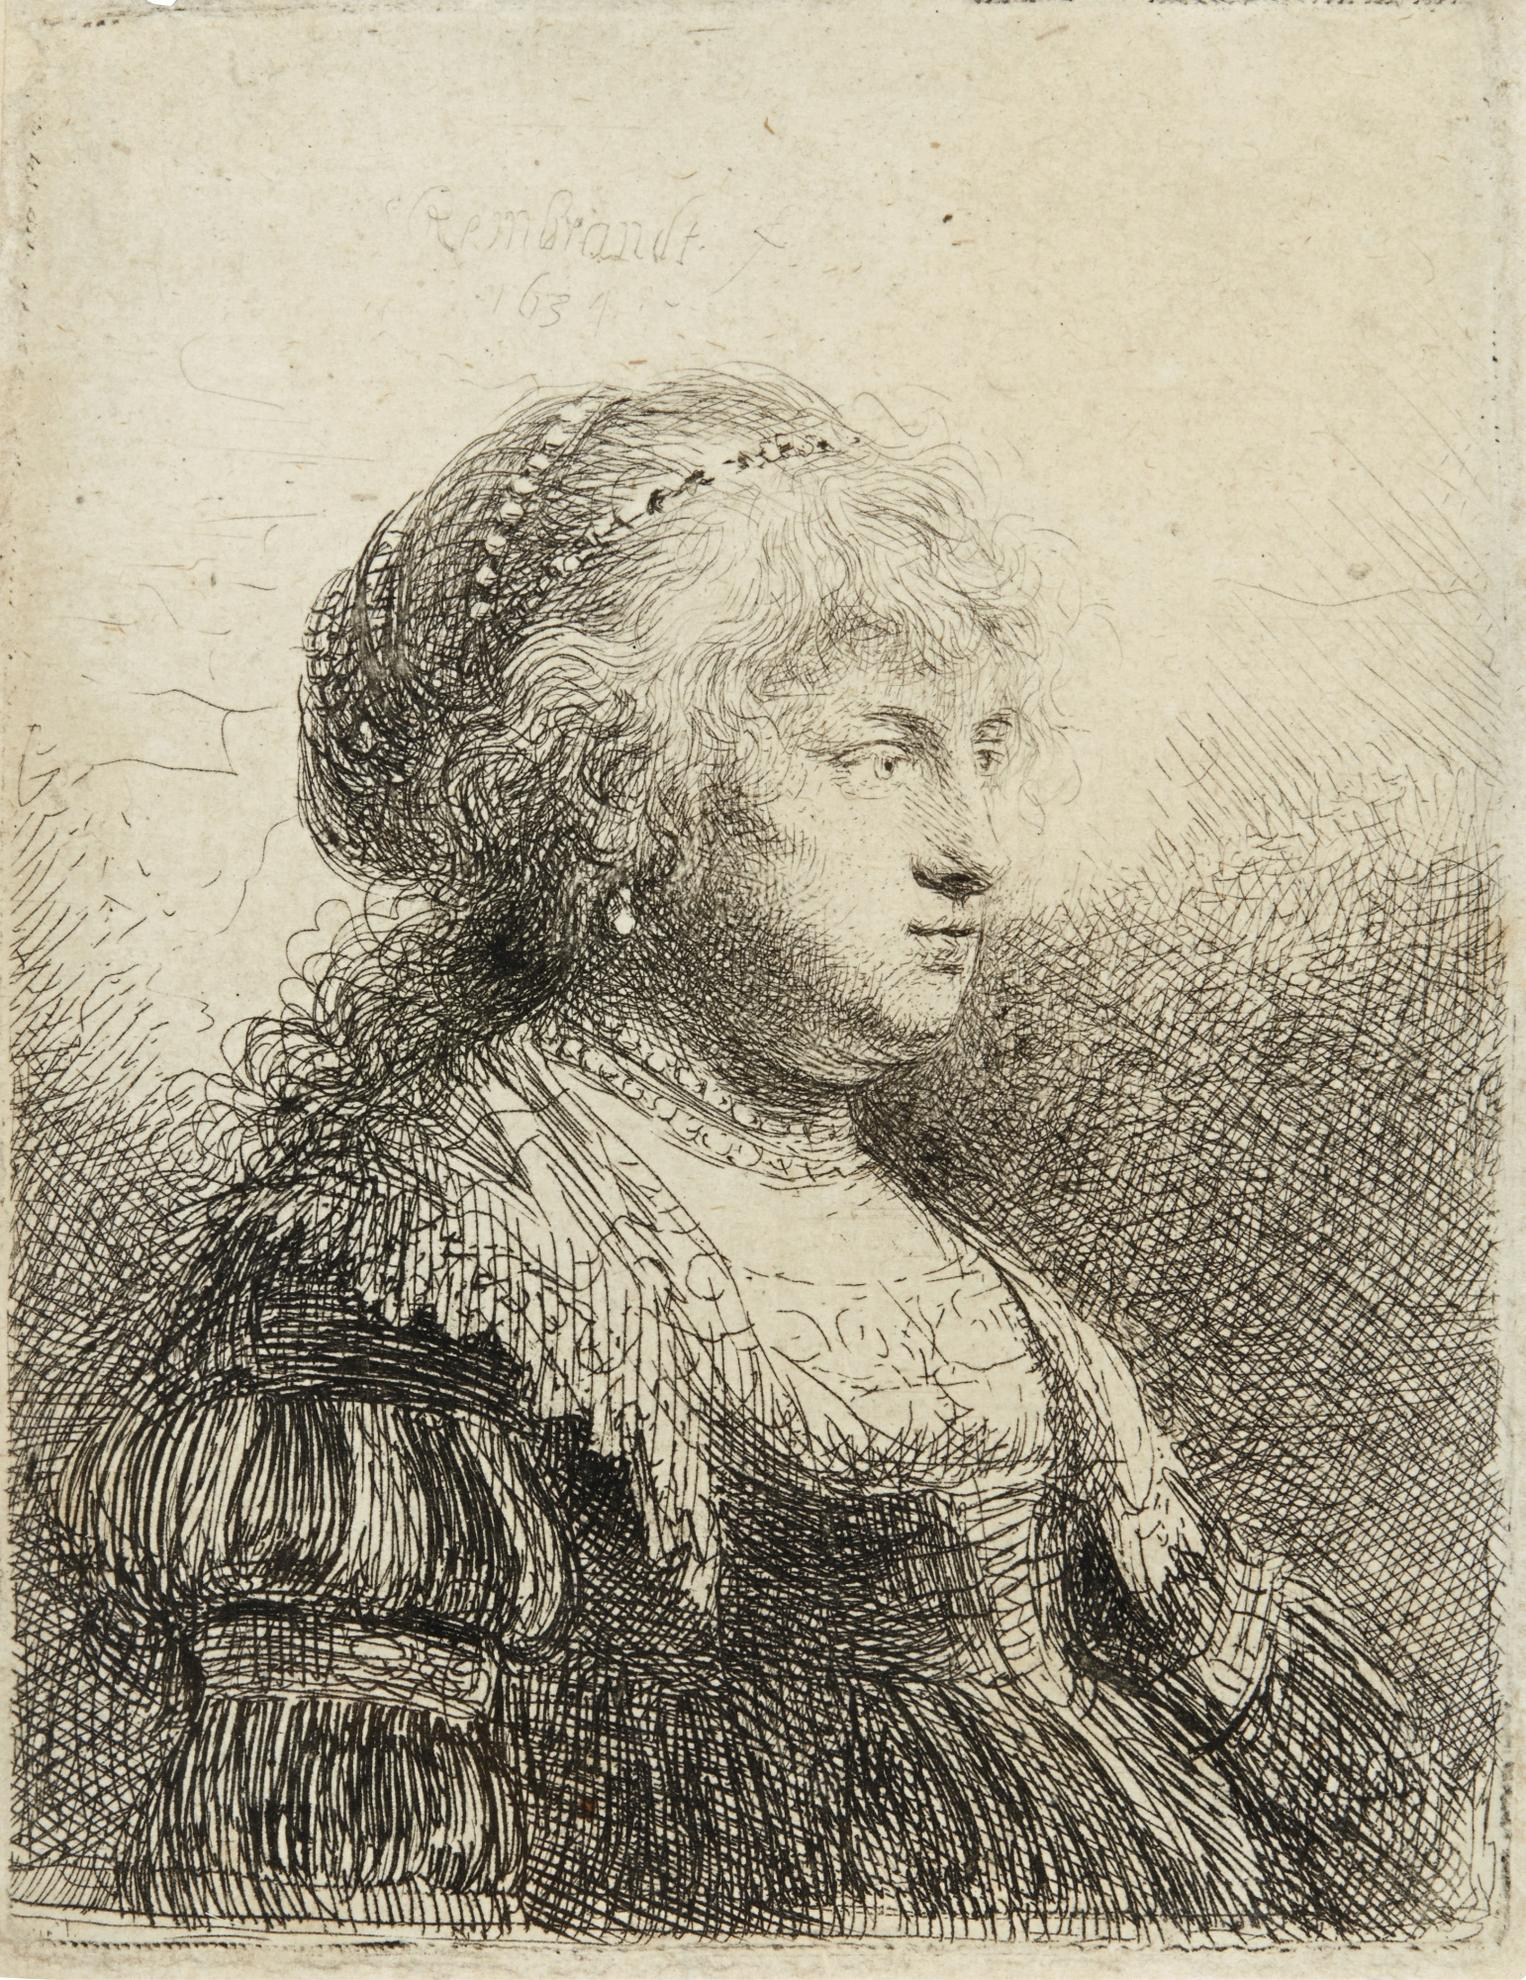 Rembrandt van Rijn-Saskia With Pearls In Her Hair (B., Holl. 347; New Holl. 136; H. 112)-1634